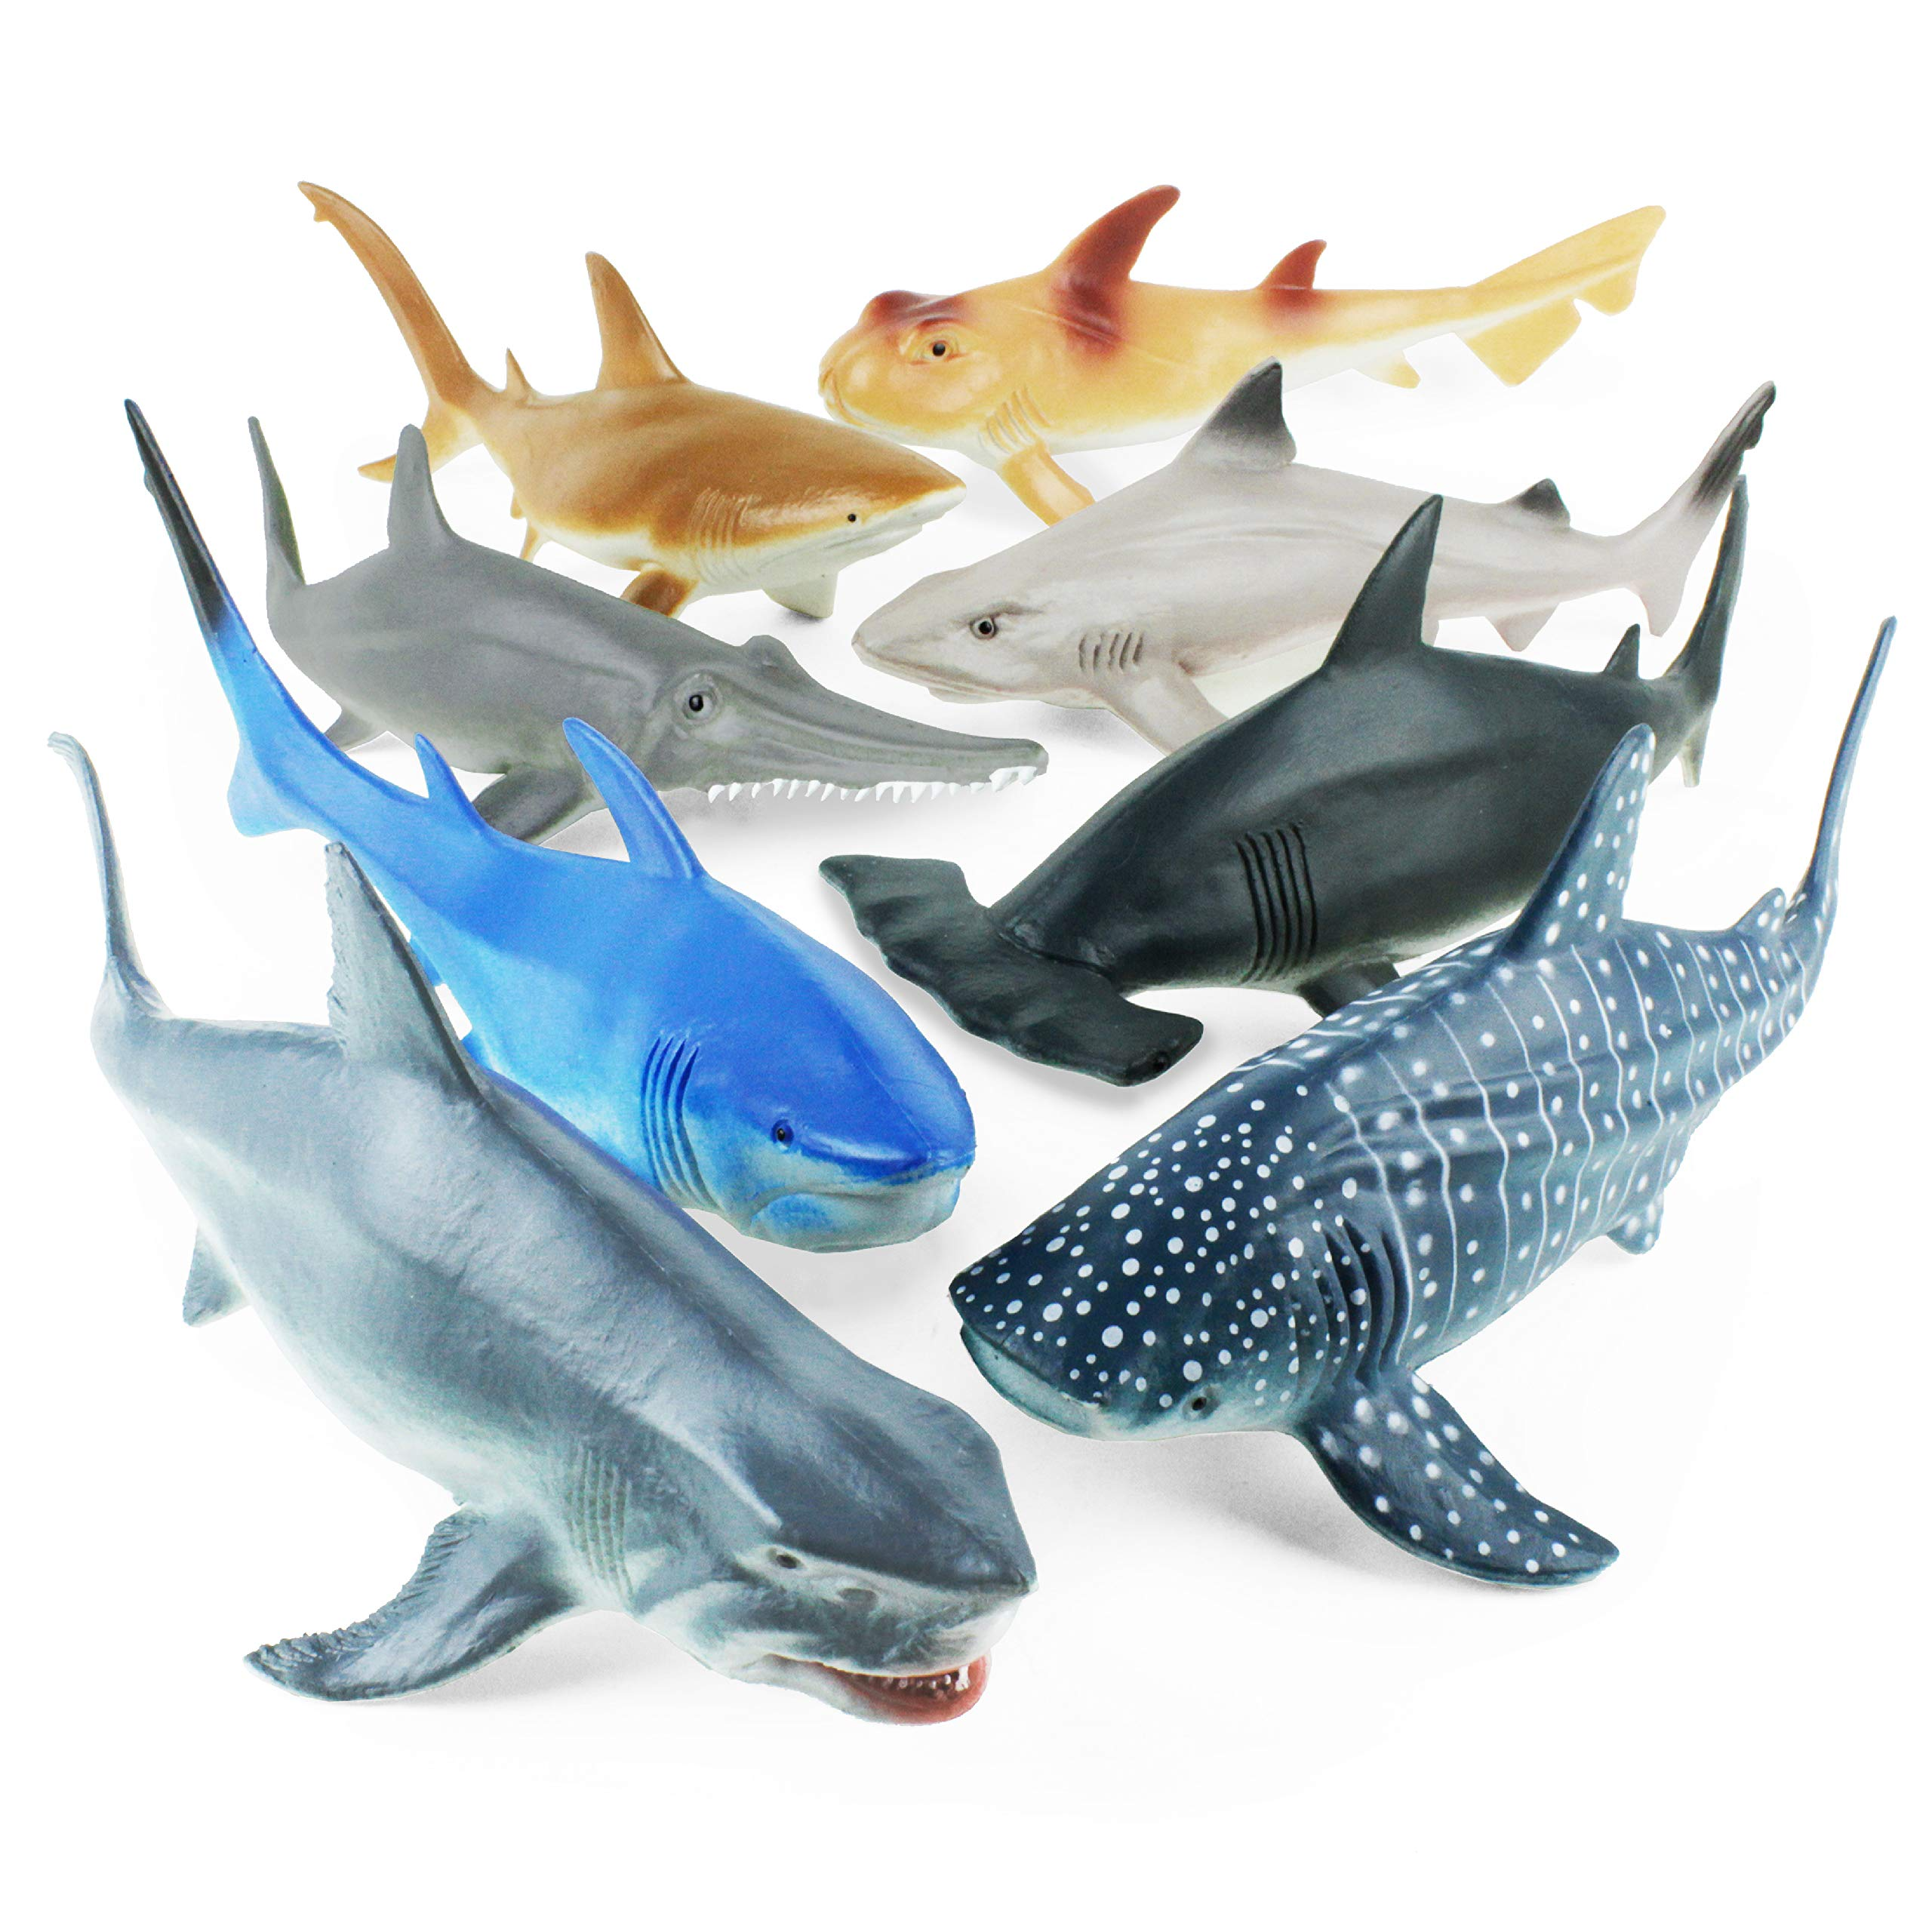 Boley 8 Piece Shark Figure Toys - Realistic Looking Ocean Shark Figures - Sea Creatures Great for Party Favors, Bath Time Fun, and More!